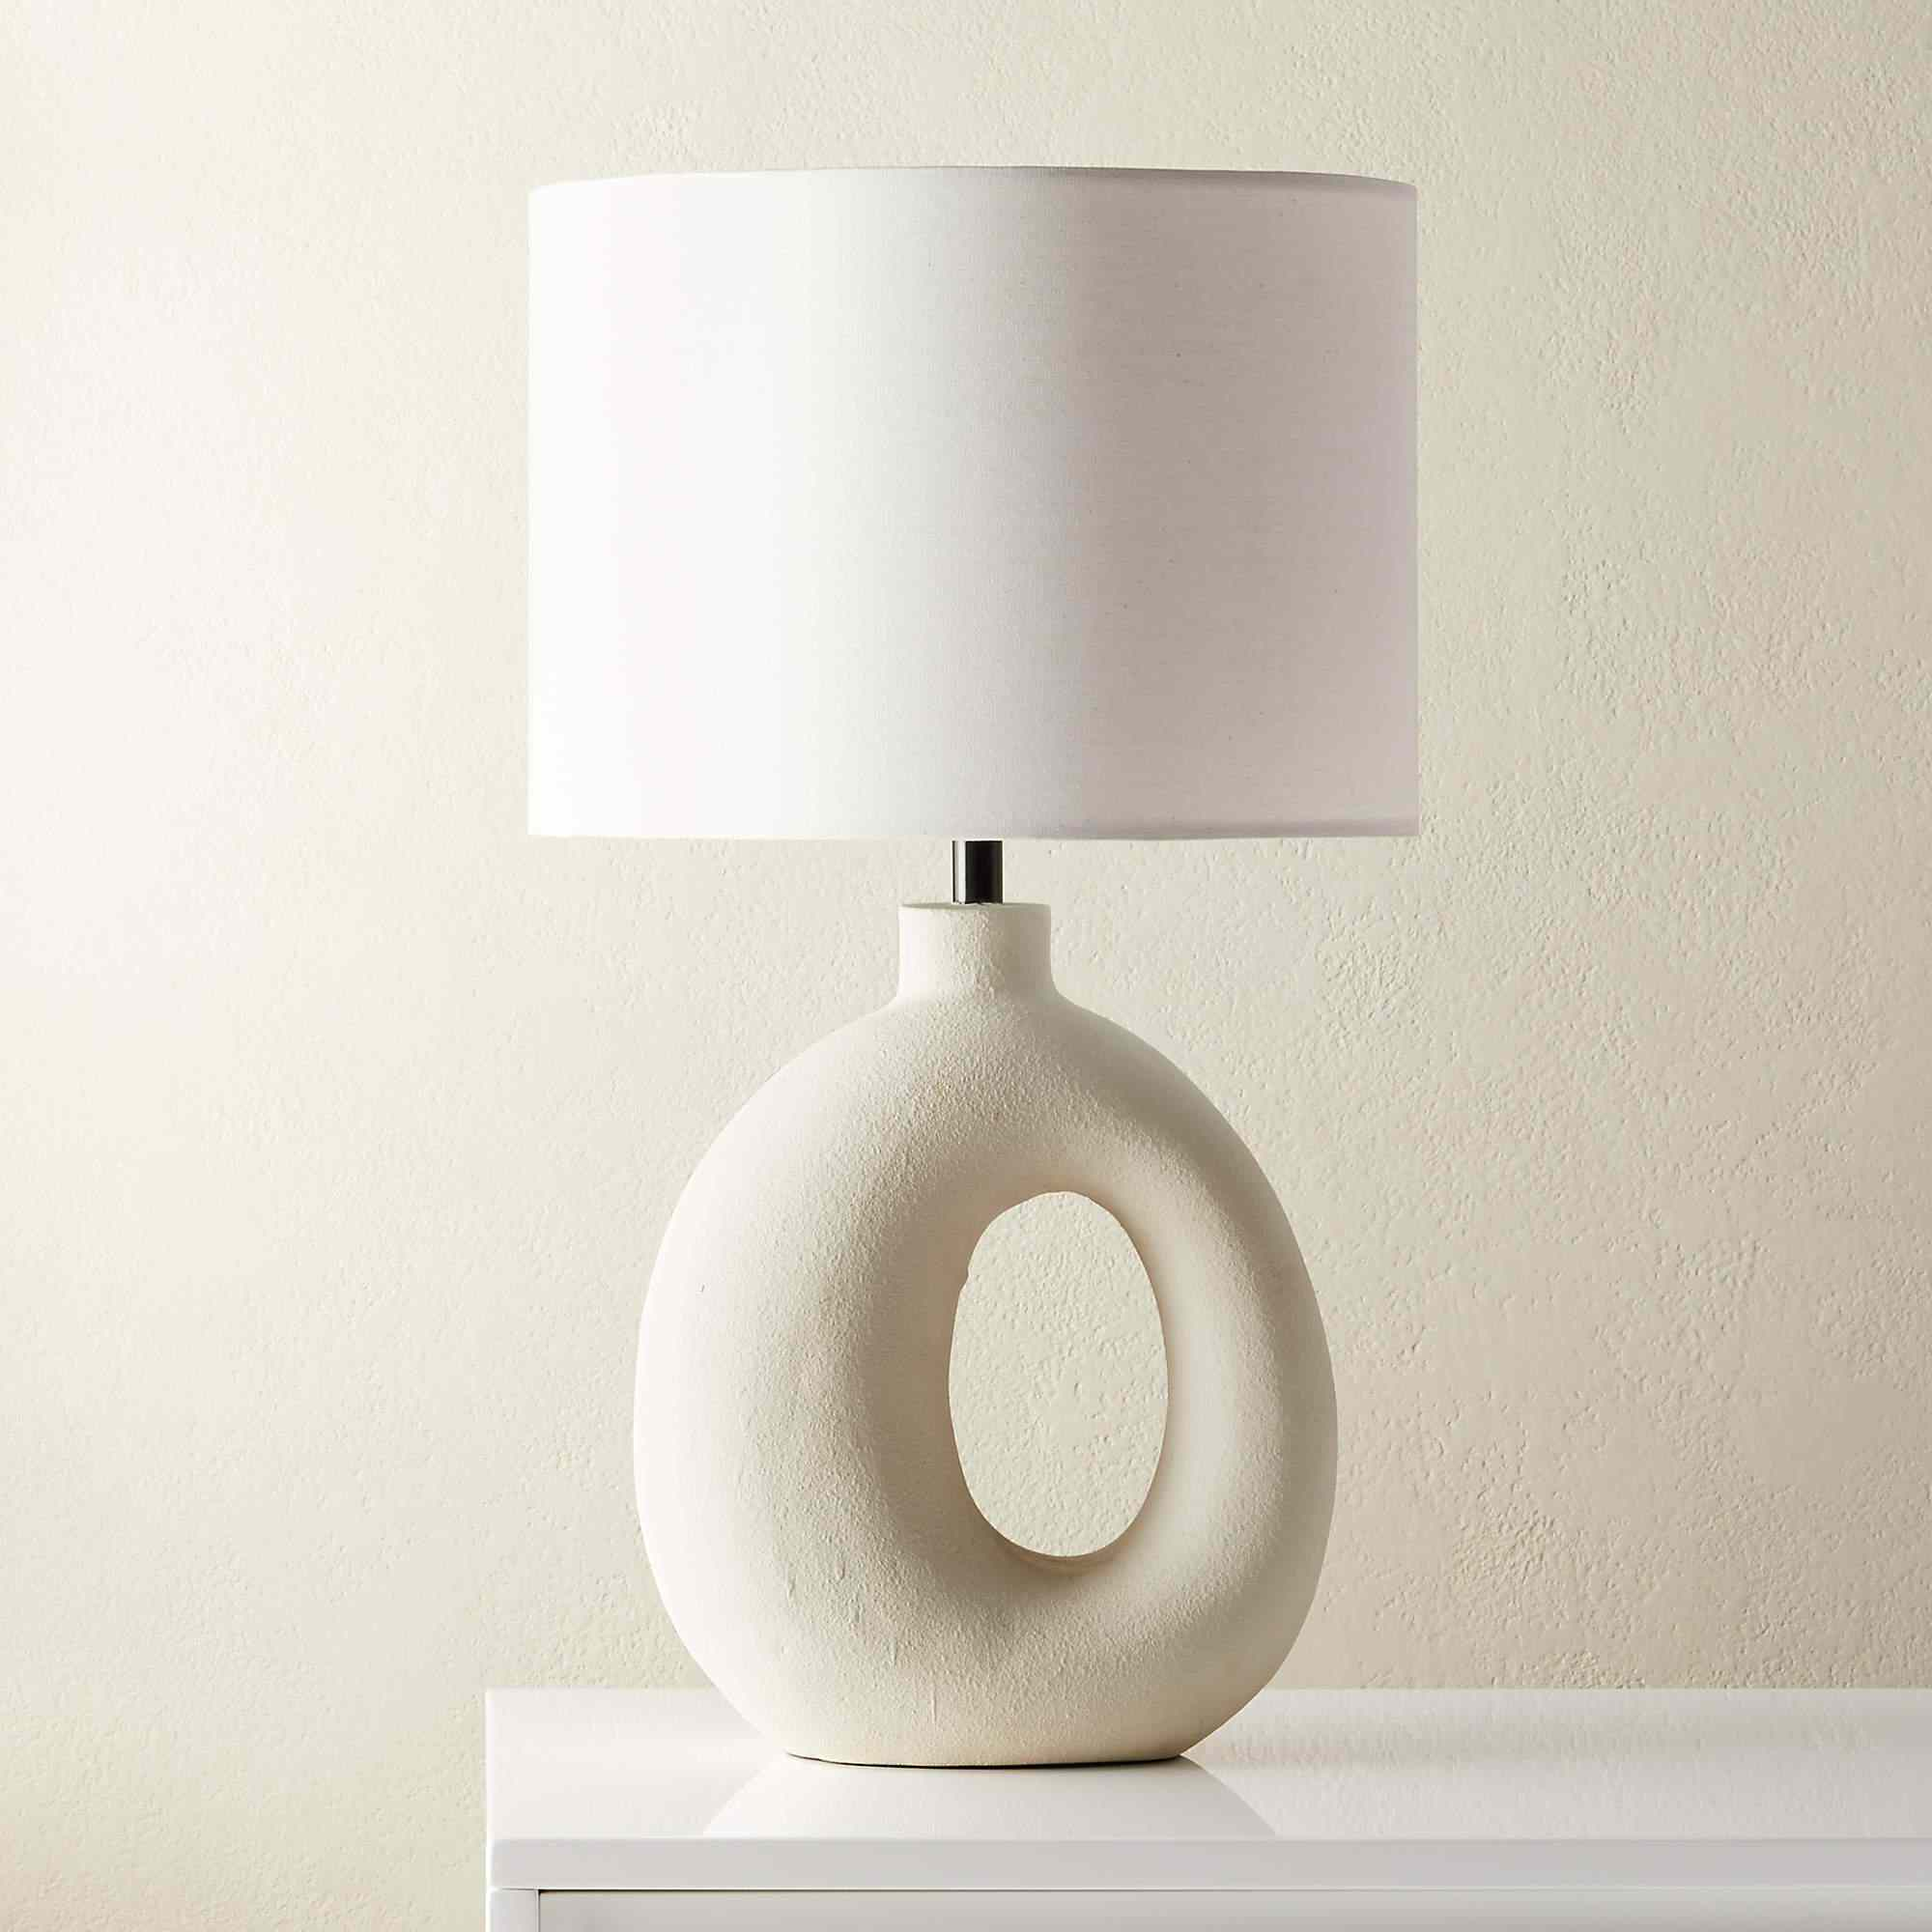 A geometric table lamp, currently for sale at CB2